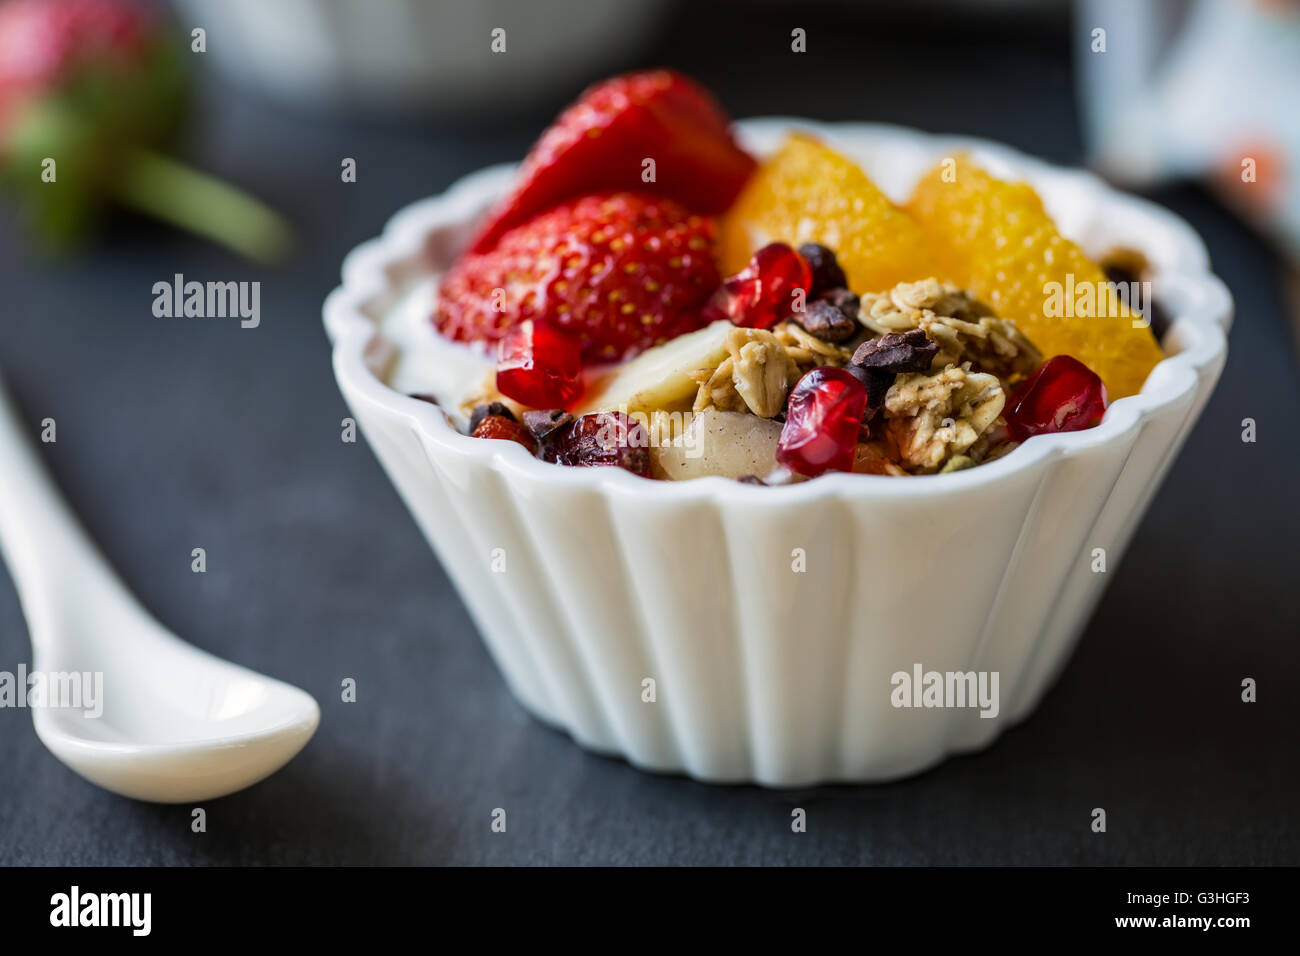 Granola with Orange, Strawberry, Cacao nibs and Pomegranate on yogurt - Stock Image